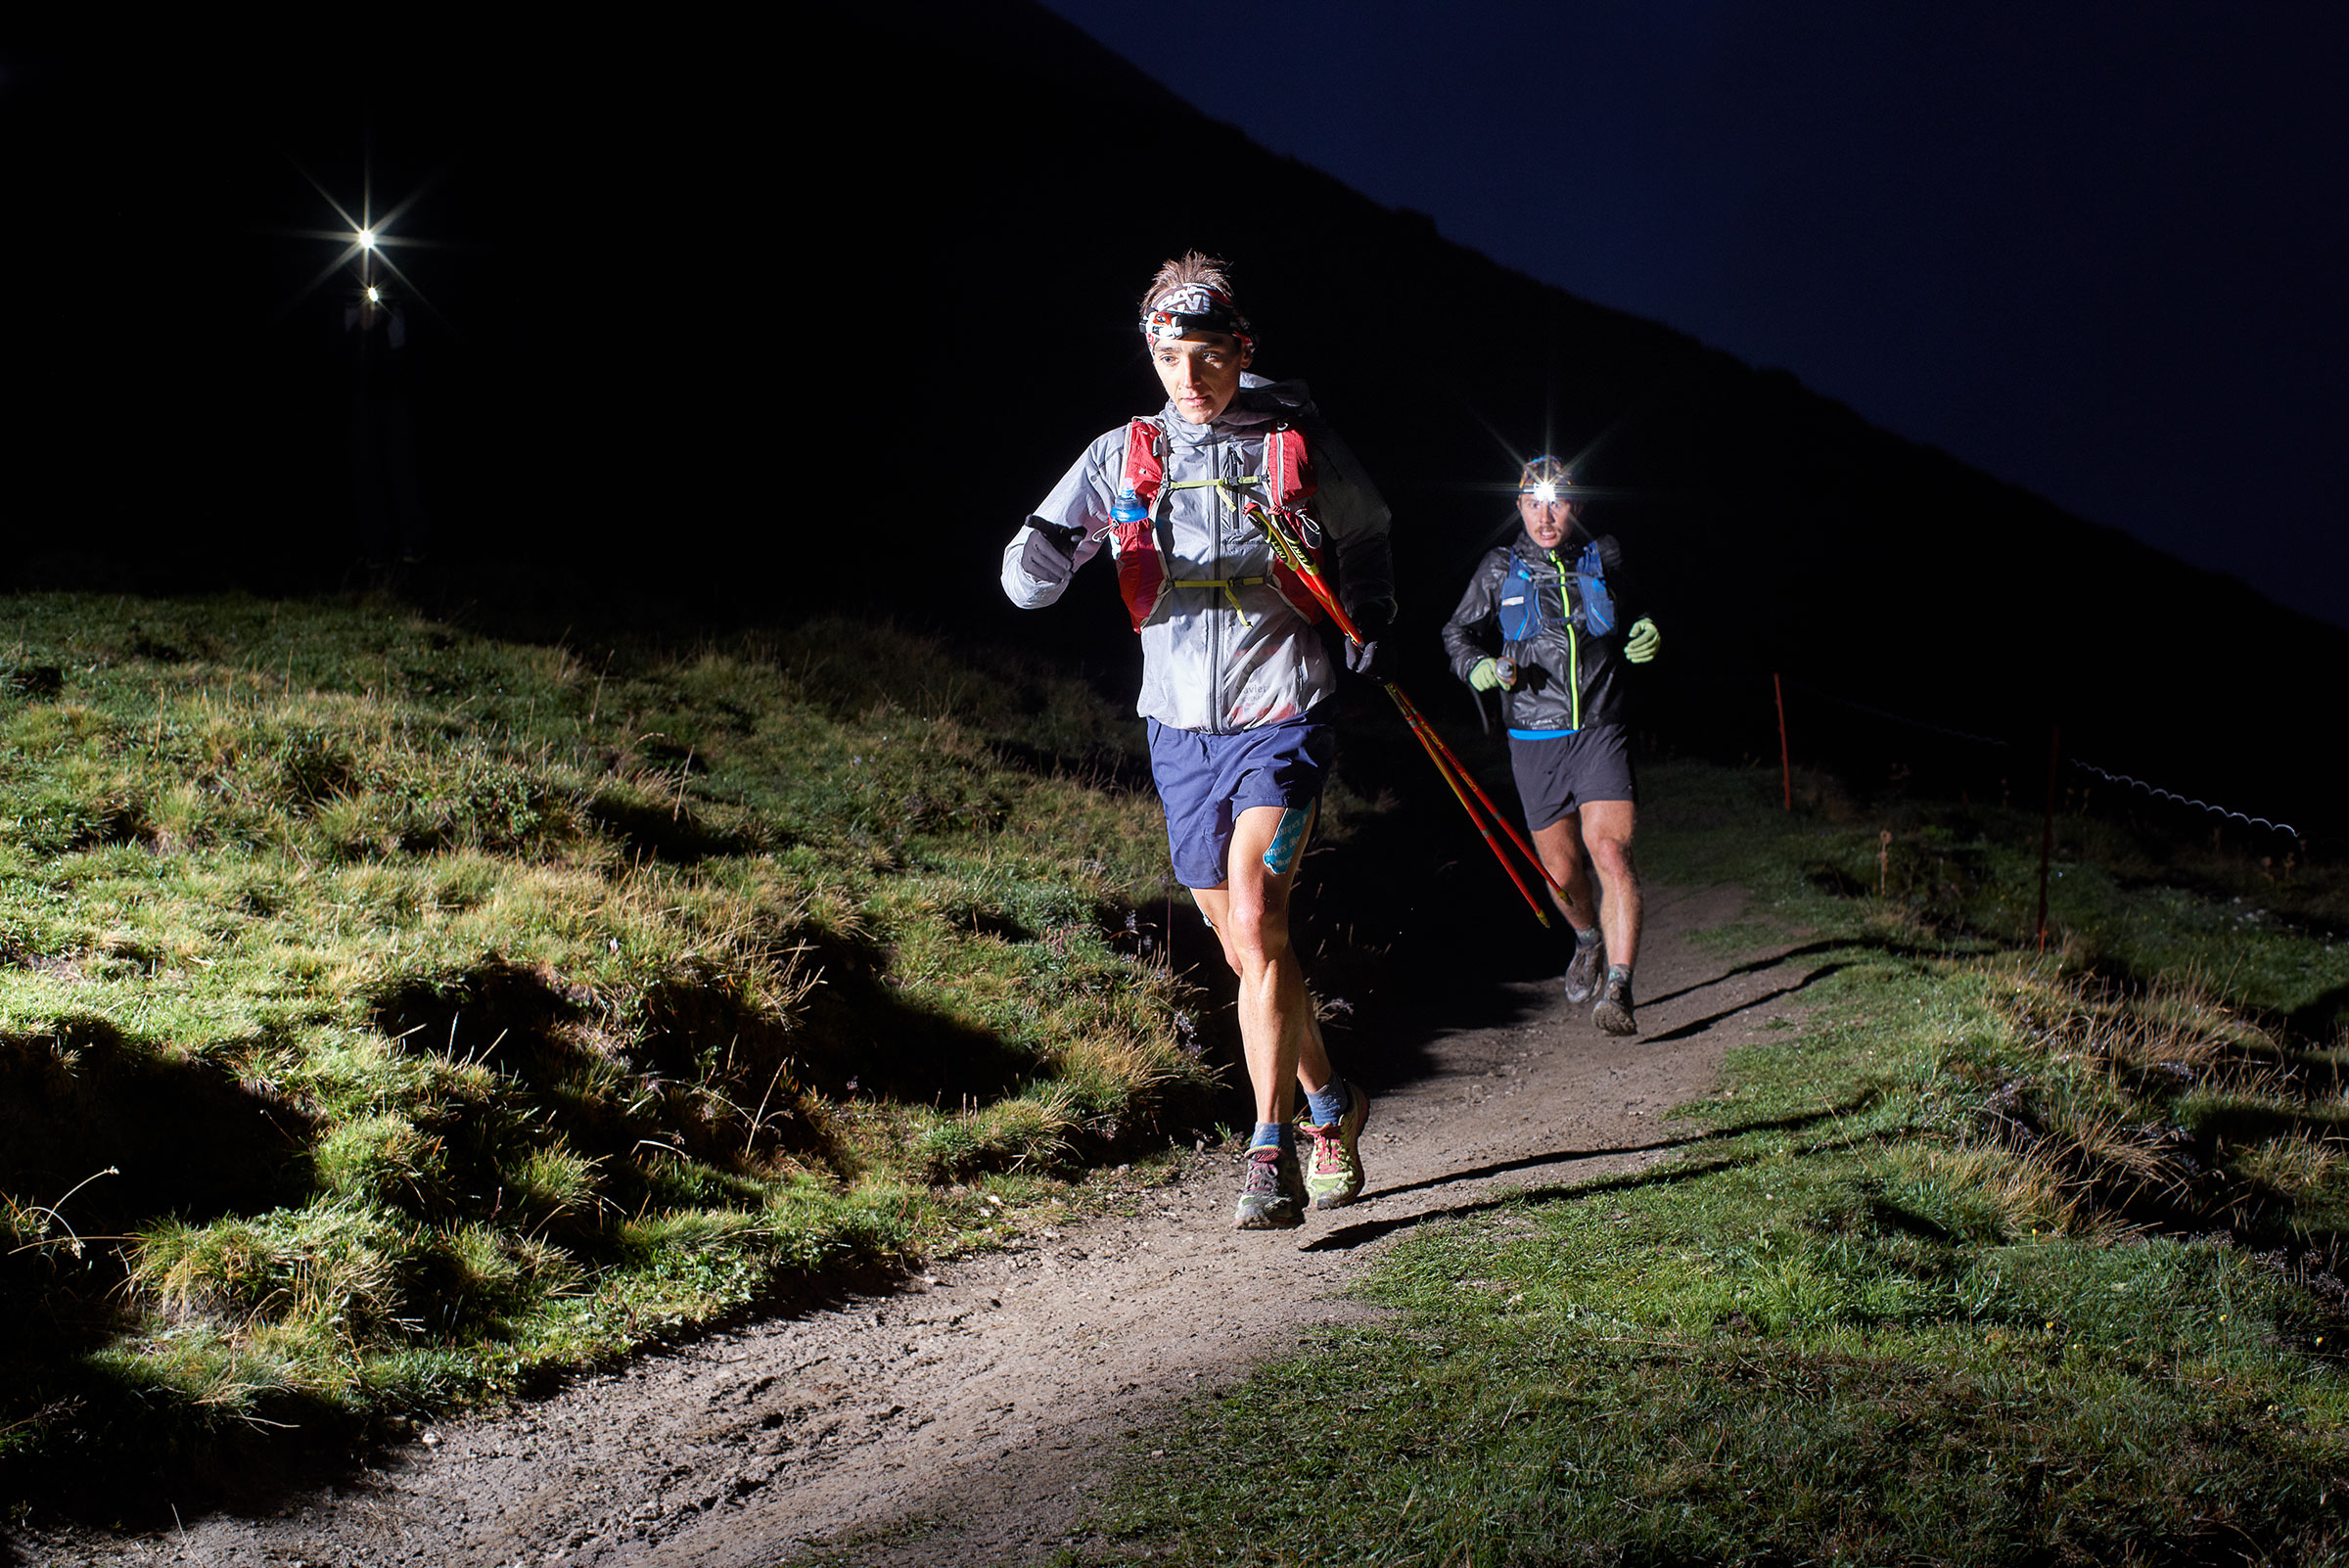 Xavier Thevenard and Zach Miller / UTMB 2018 / Pennine Alps, Switzerland